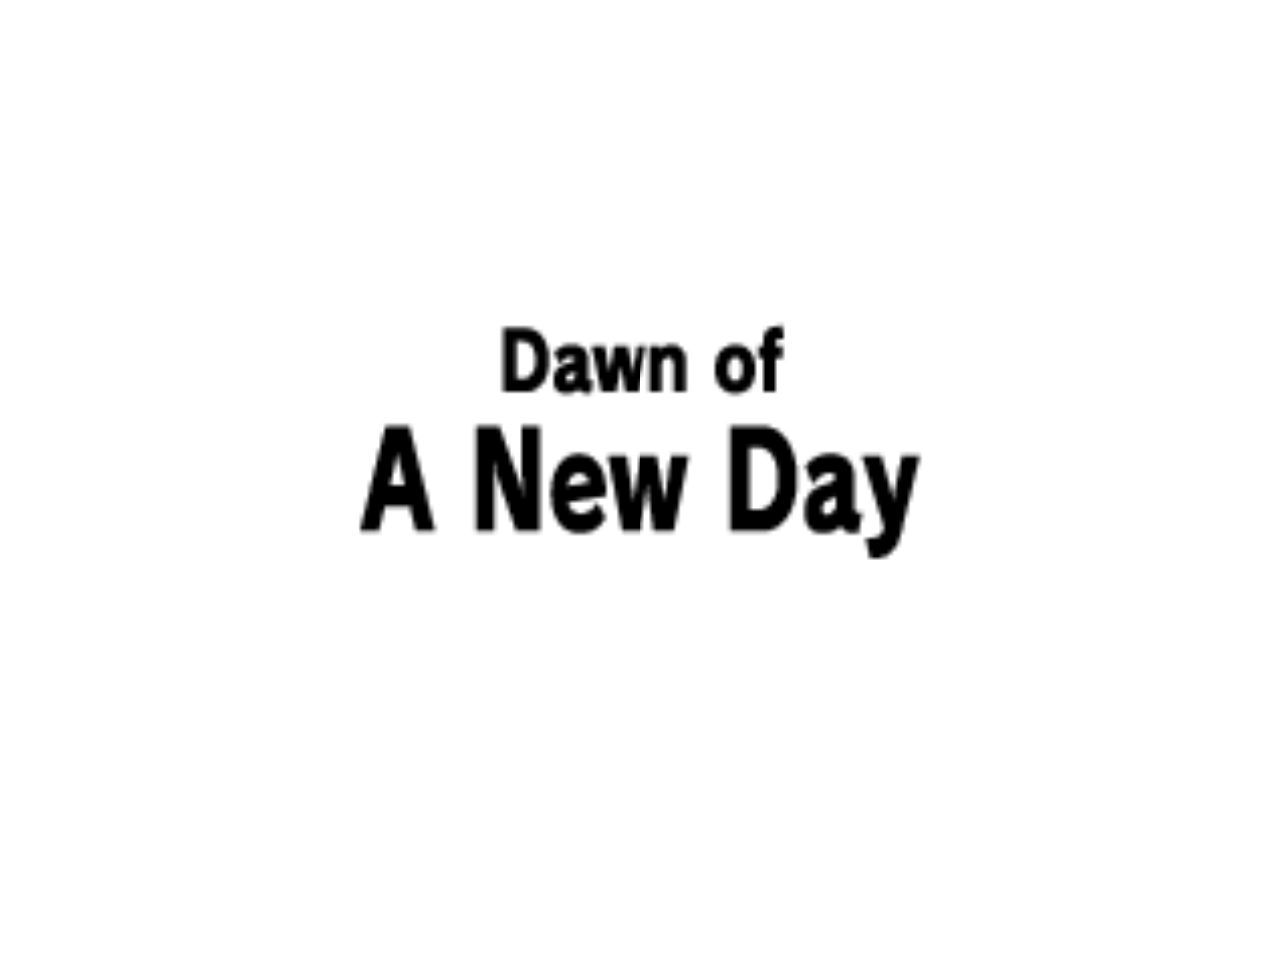 Dawn-of-a-New-Day.png